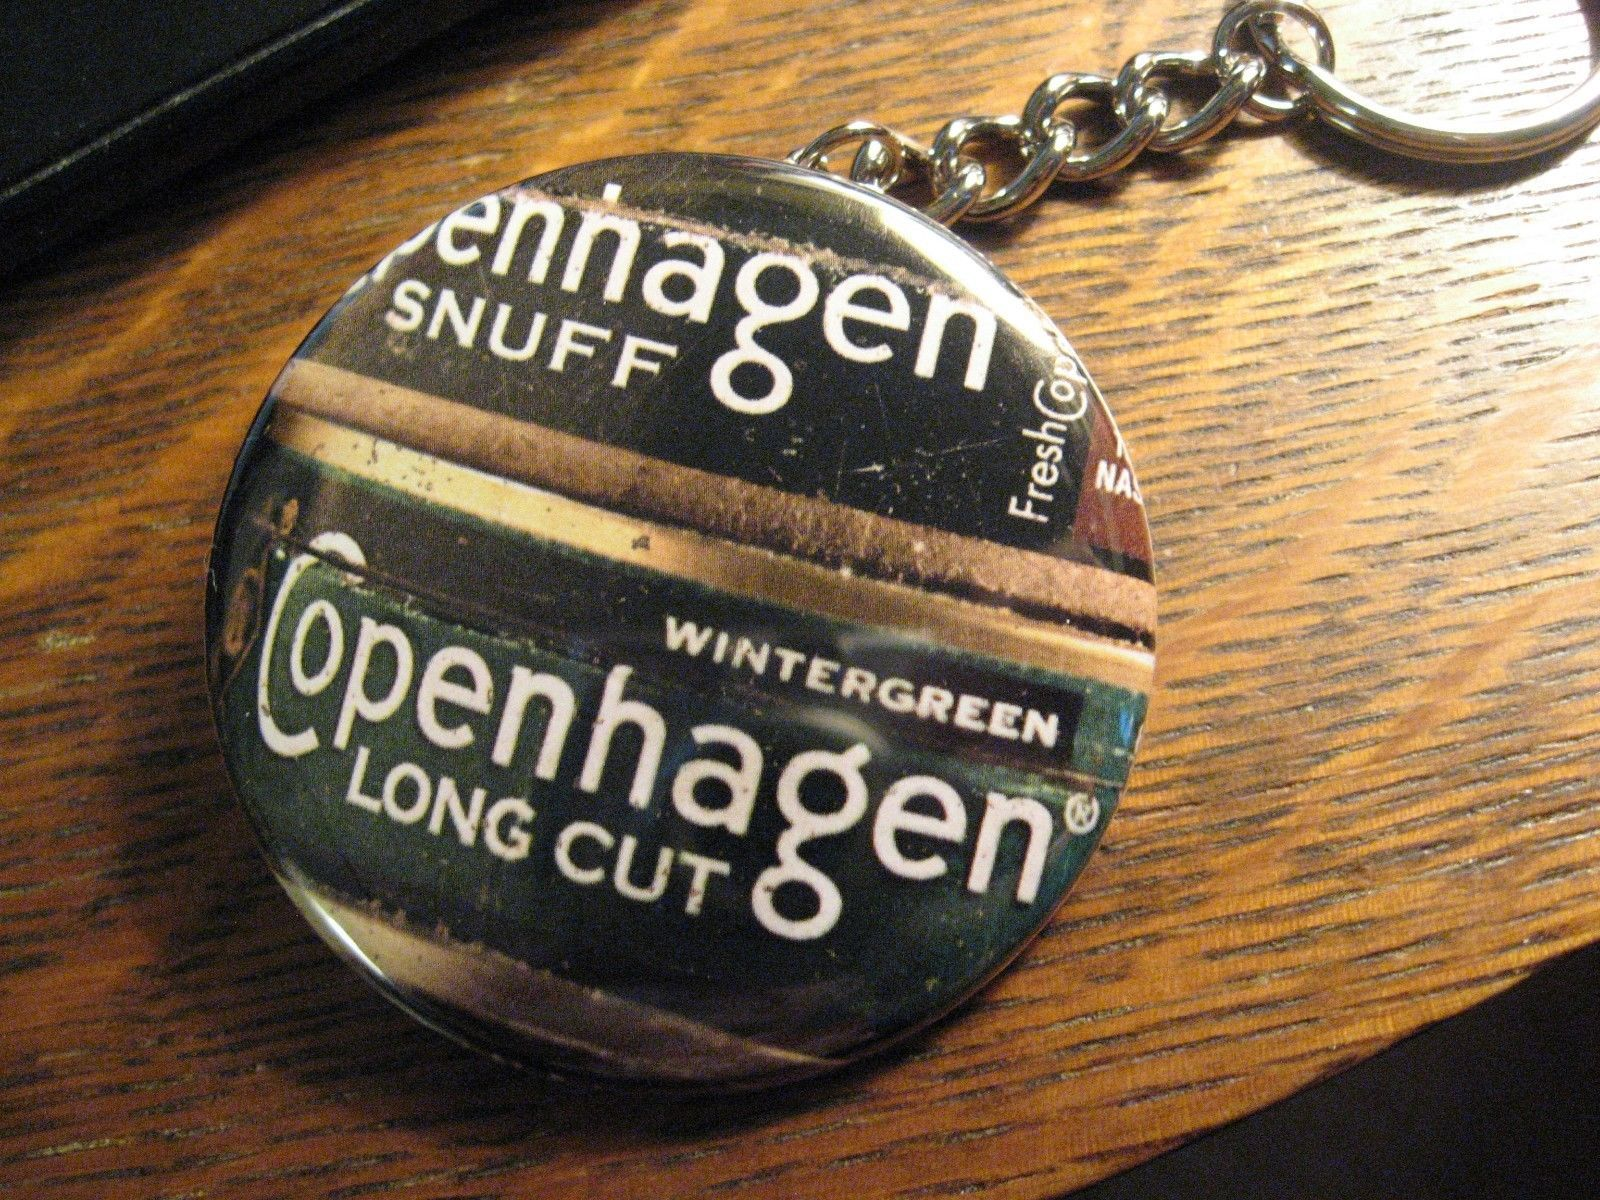 Copenhagen Keychain - RePurposed Magazine Snuff Ad Backpack Purse Clip Ornament